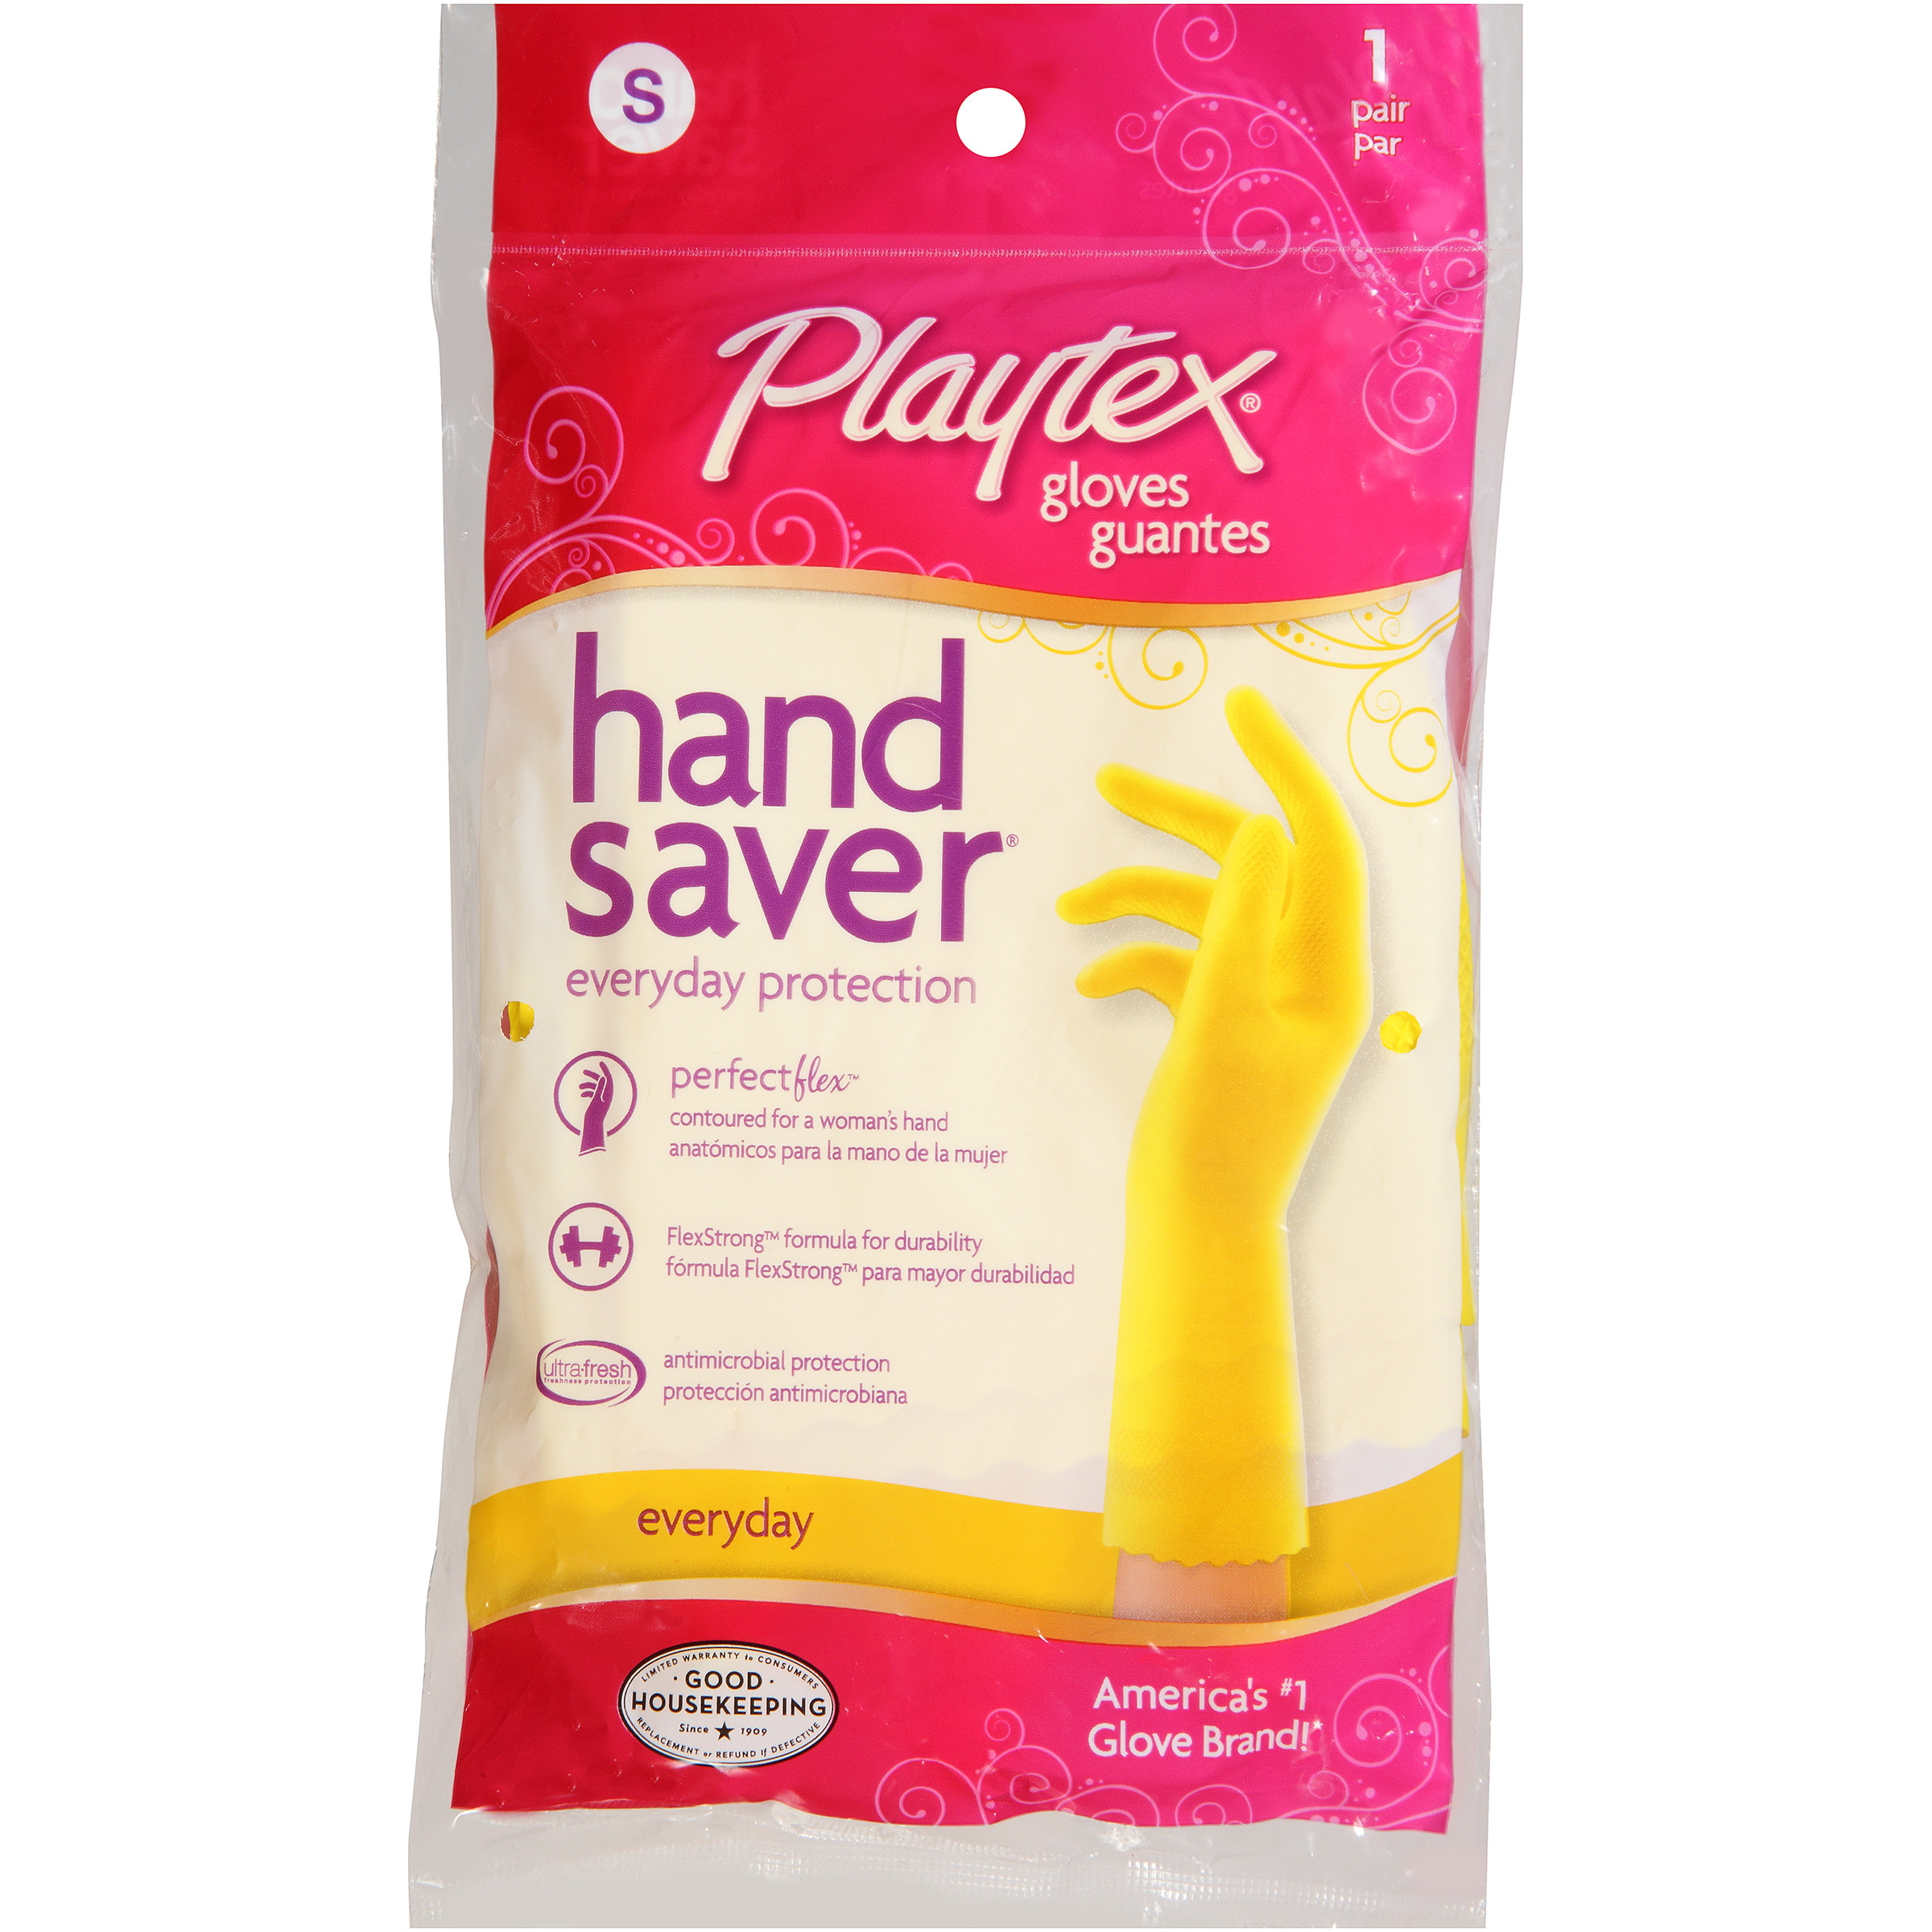 Playtex Handsaver Reusable Gloves Small - 1 Pair